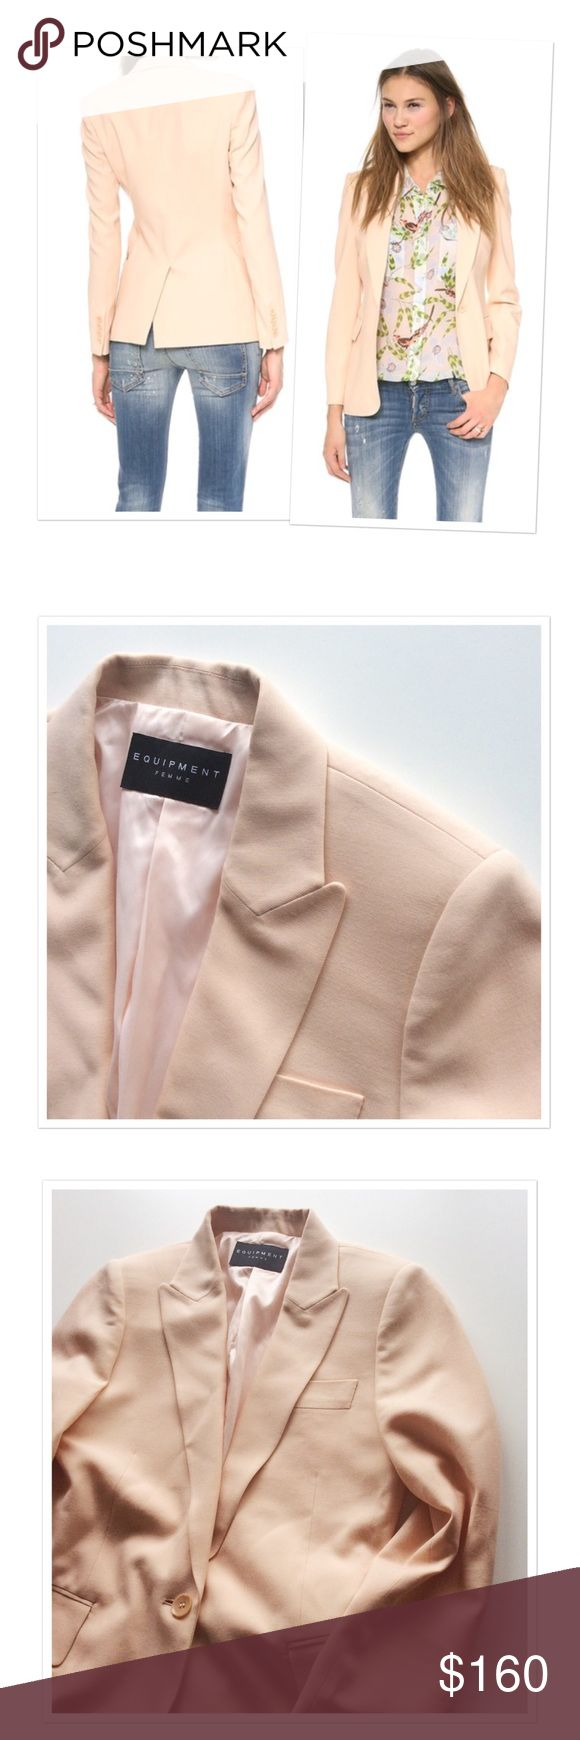 Equipment femme 'Anais' peach blazer jacket Tailored Equipment blazer. Peaked lapels. 3 pockets. Back vent. Lined. Light shoulder padding. Single-button placket. 90% wool, 10% viscose. Size S. Worn twice and in a great condition. Light peach. Removed fabric content label. Equipment Jackets & Coats Blazers